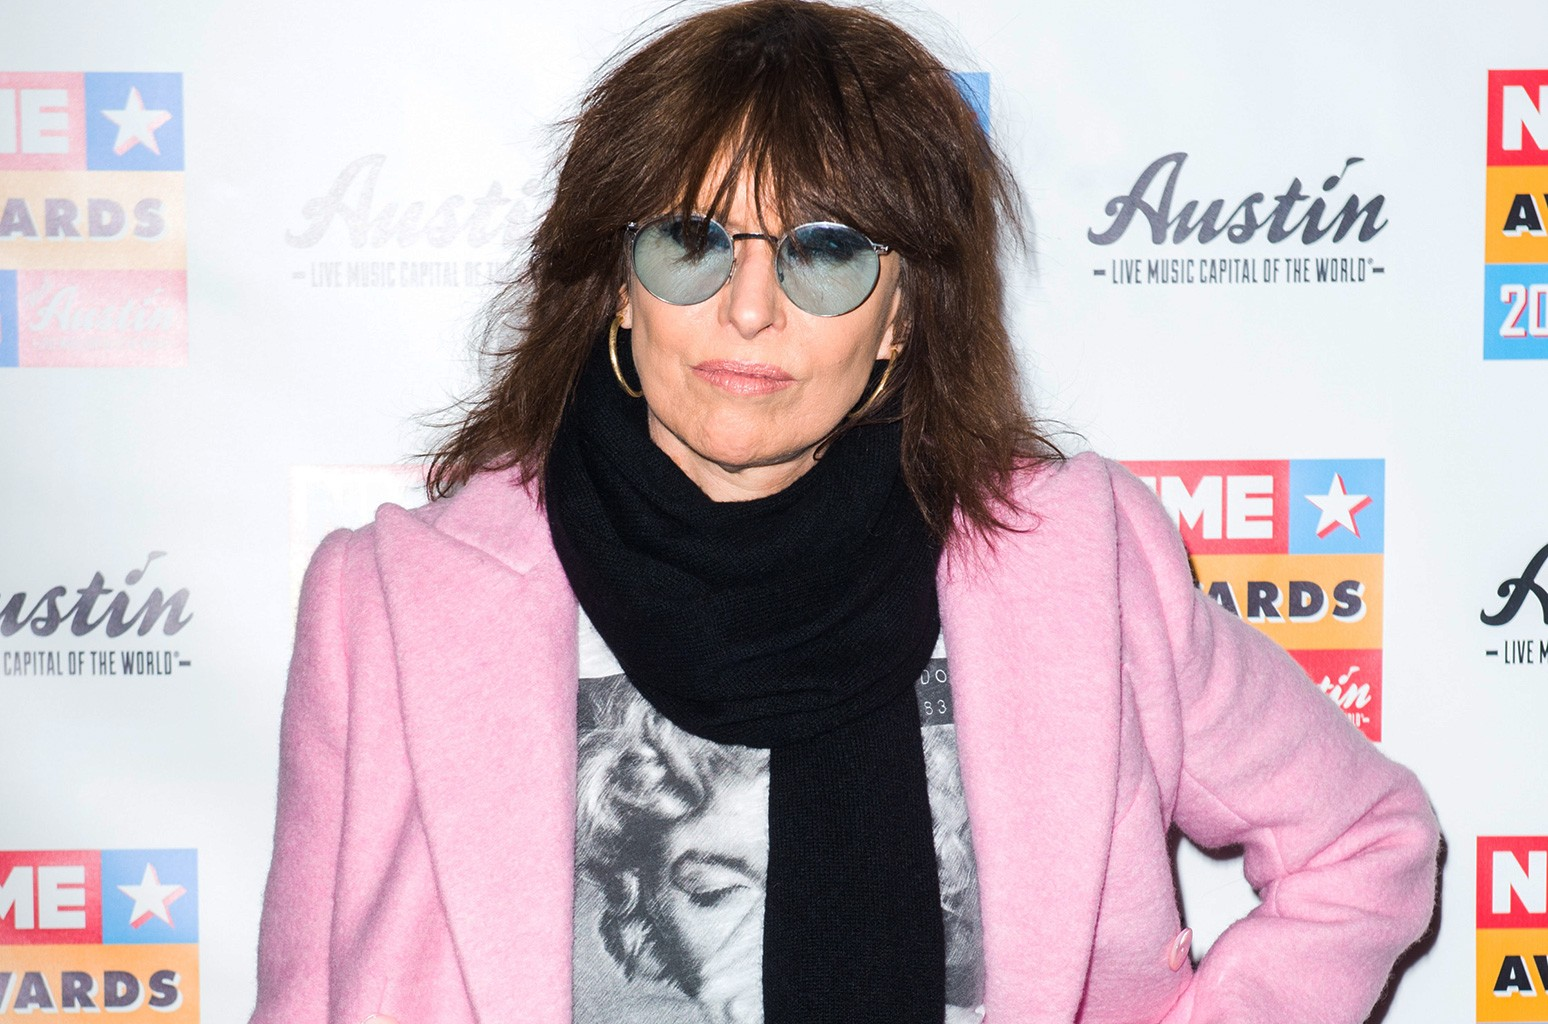 Chrissie Hynde attends the NME